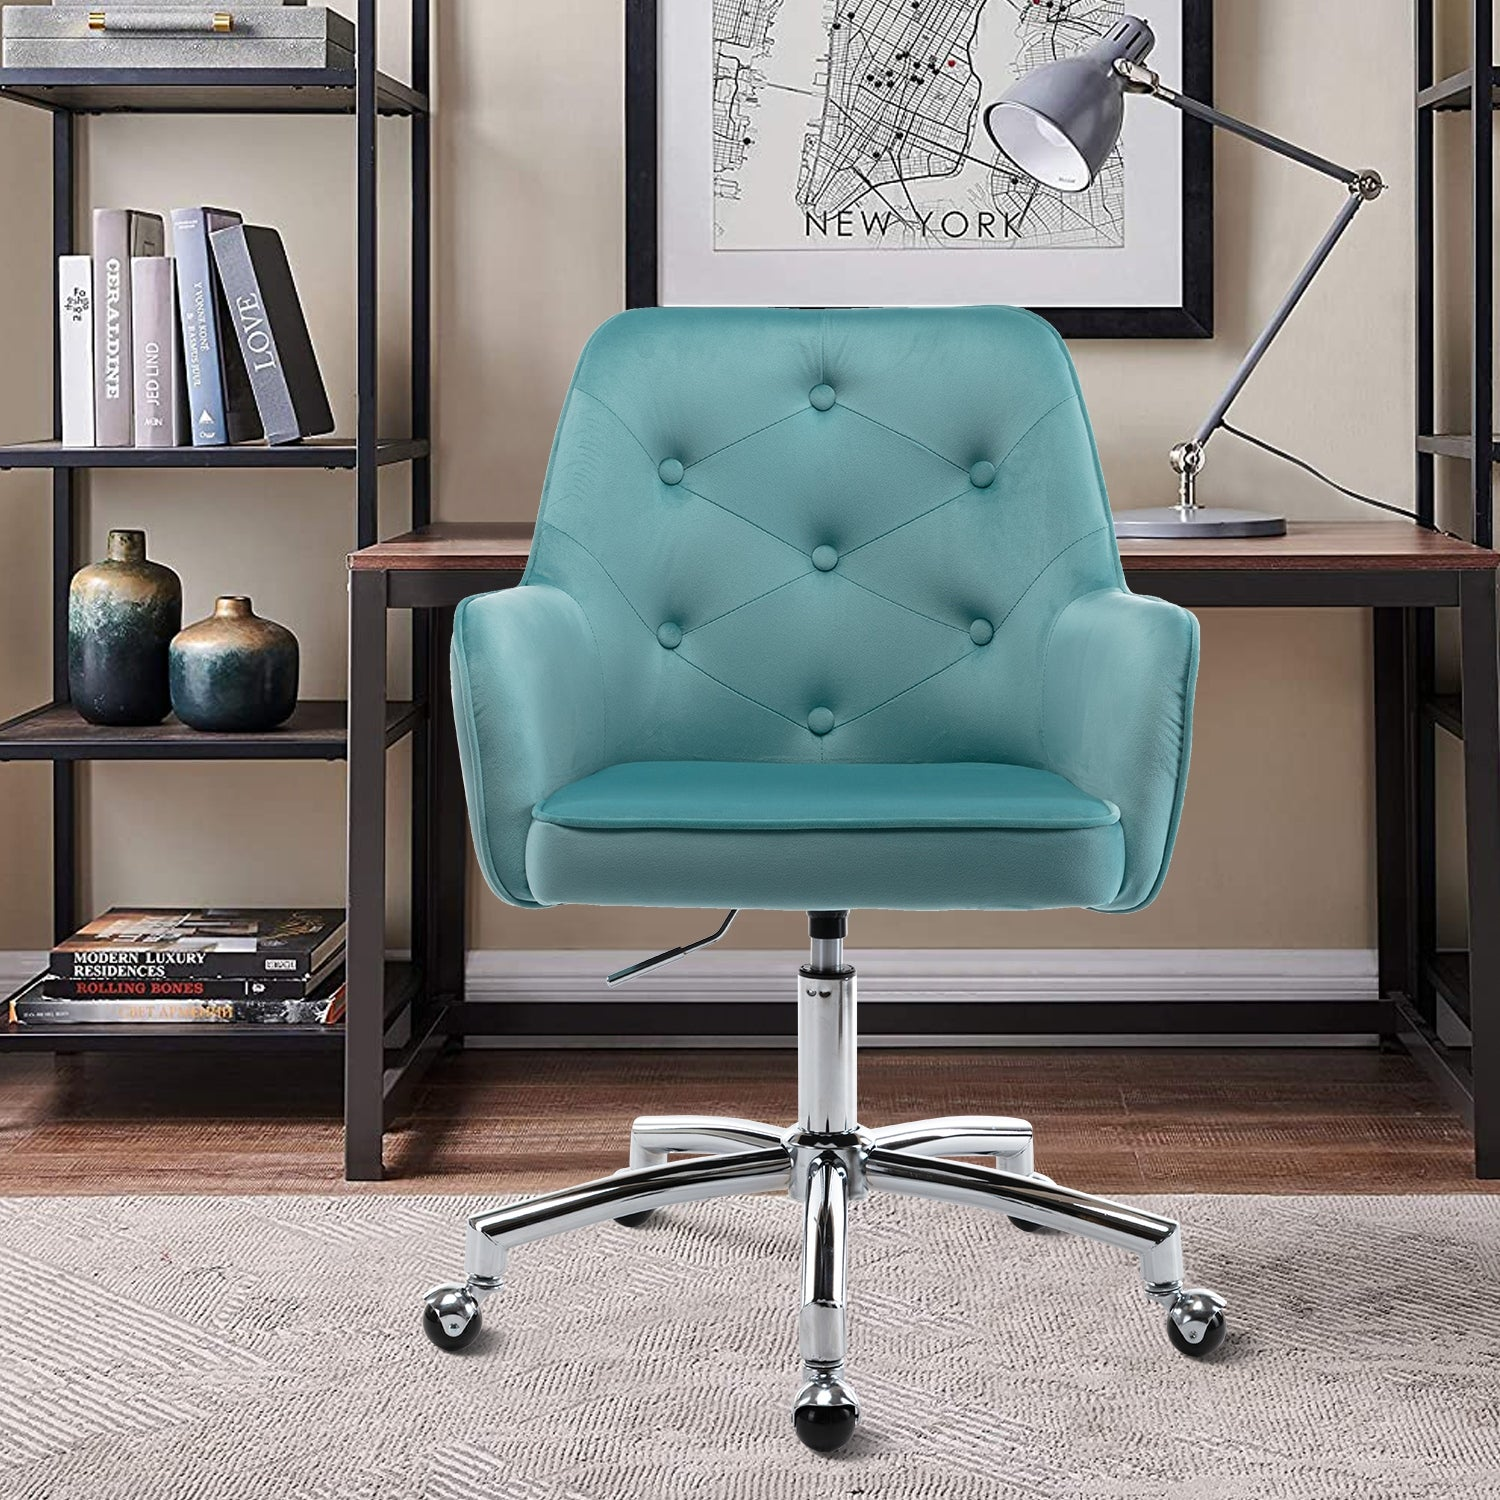 Velvet Upholstered Swivel Tufted Adjustable Height Homeoffice Task Chair With Wheels Overstock 32929340